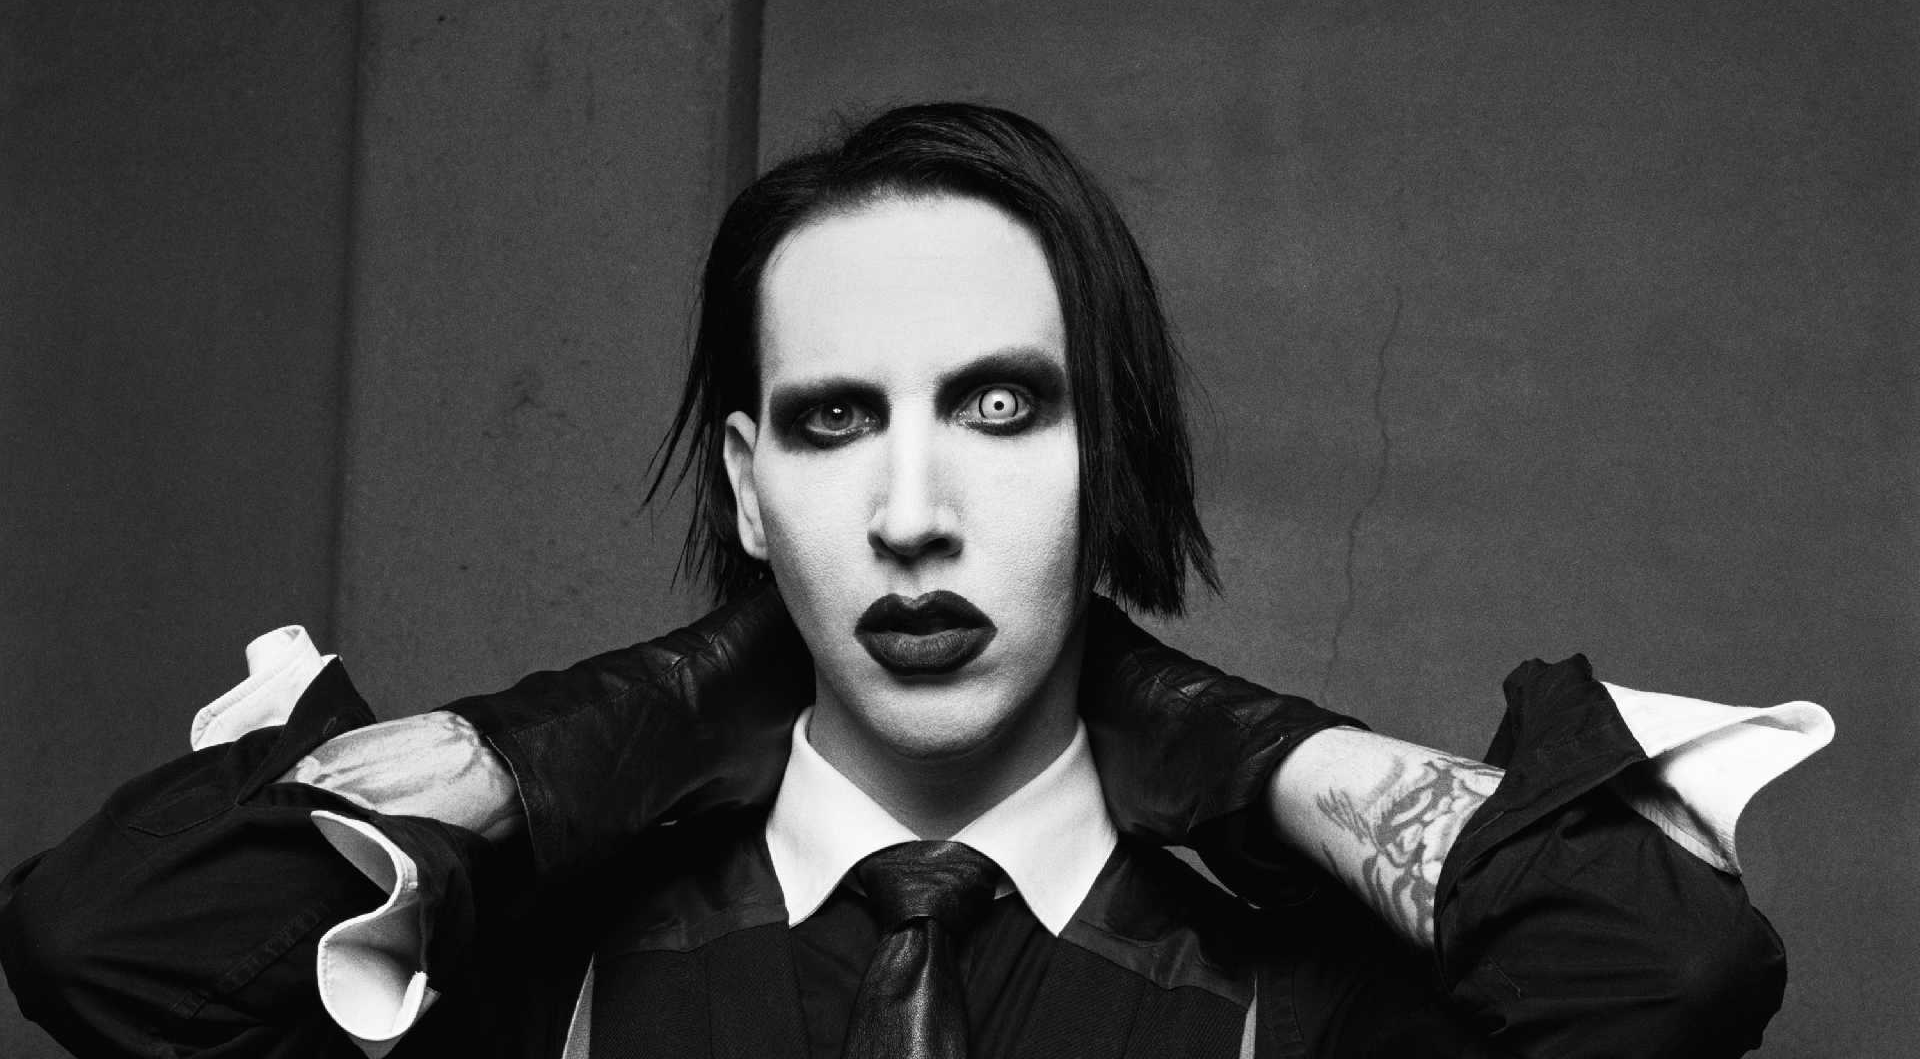 Marilyn-Manson-cancelled-concerts-in-paris